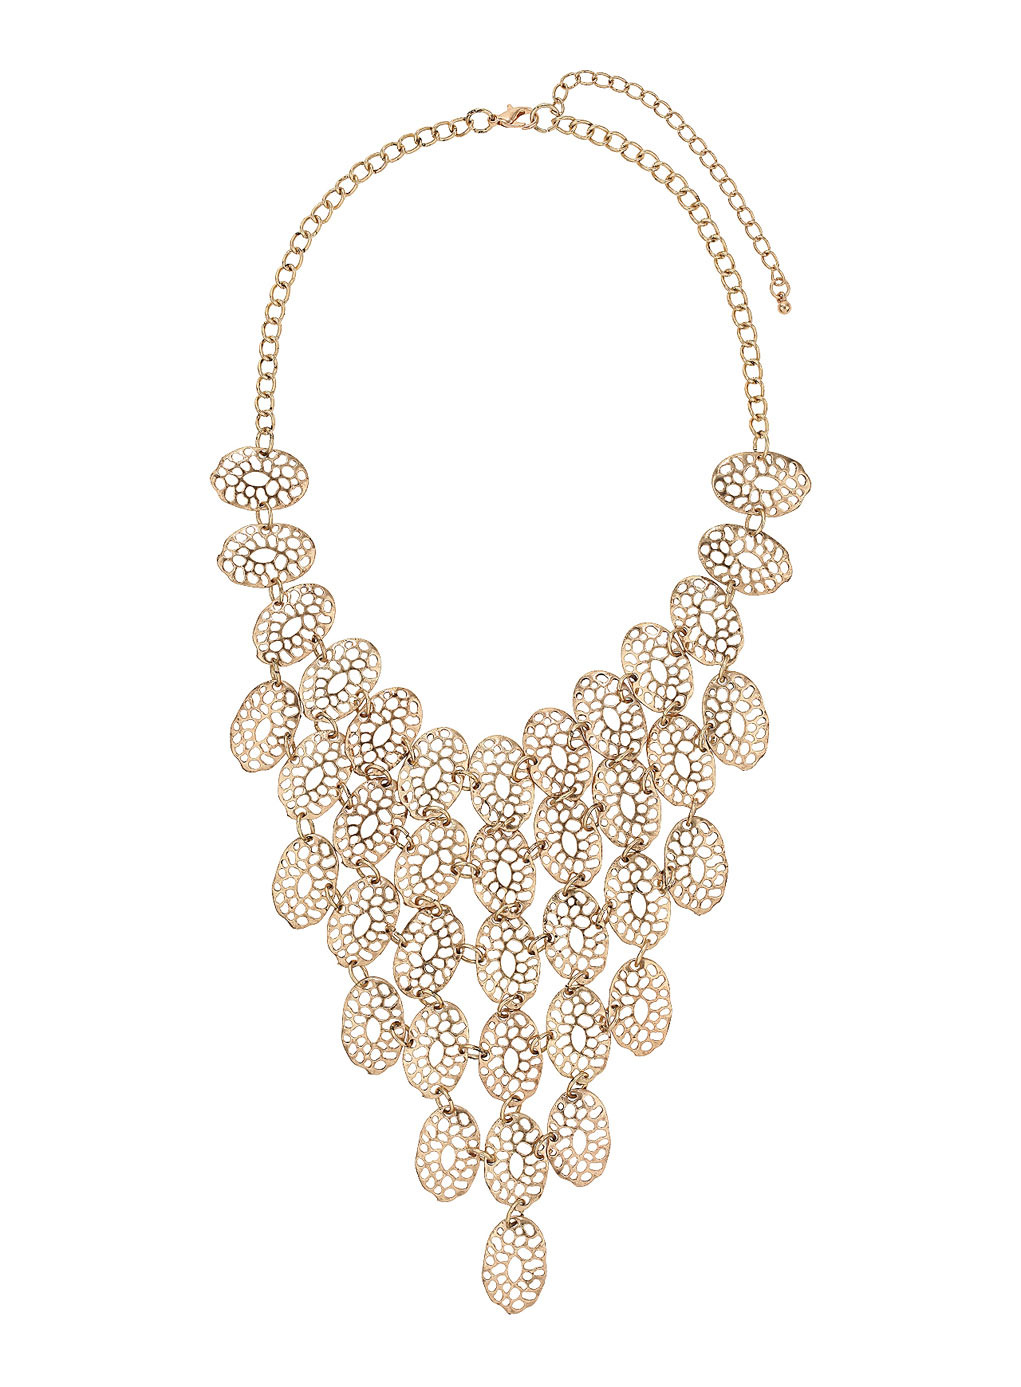 Gold Filigree Drop Statement Necklace - predominant colour: gold; occasions: evening, occasion; length: mid; size: large/oversized; material: chain/metal; finish: metallic; style: bib/statement; season: s/s 2014